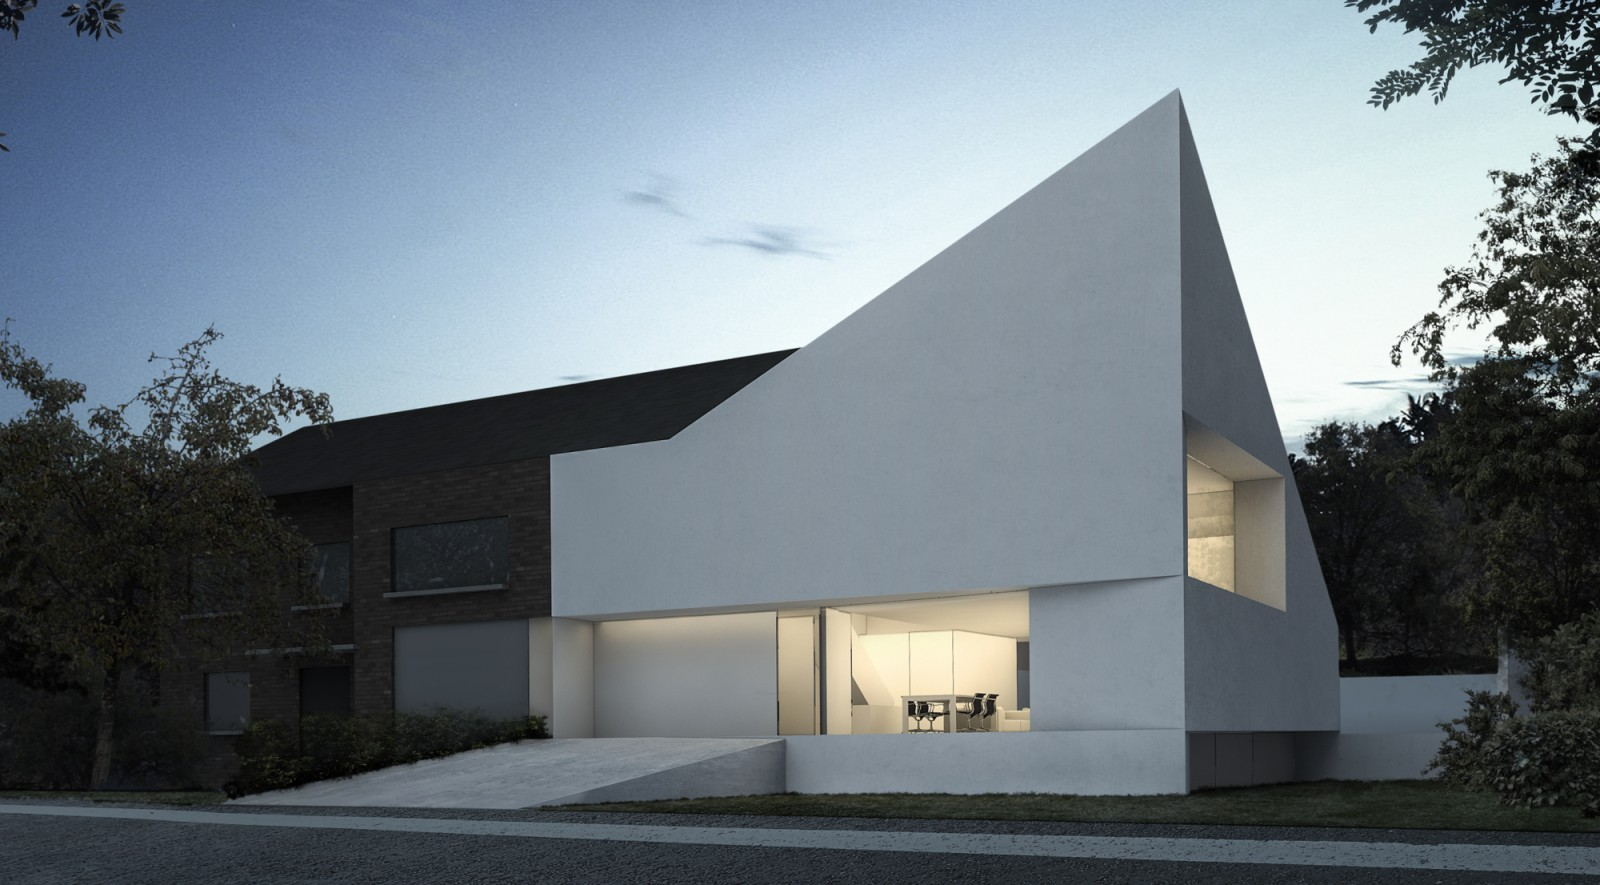 House in brussels by fran silvestre arquitectos for Pictures for the house